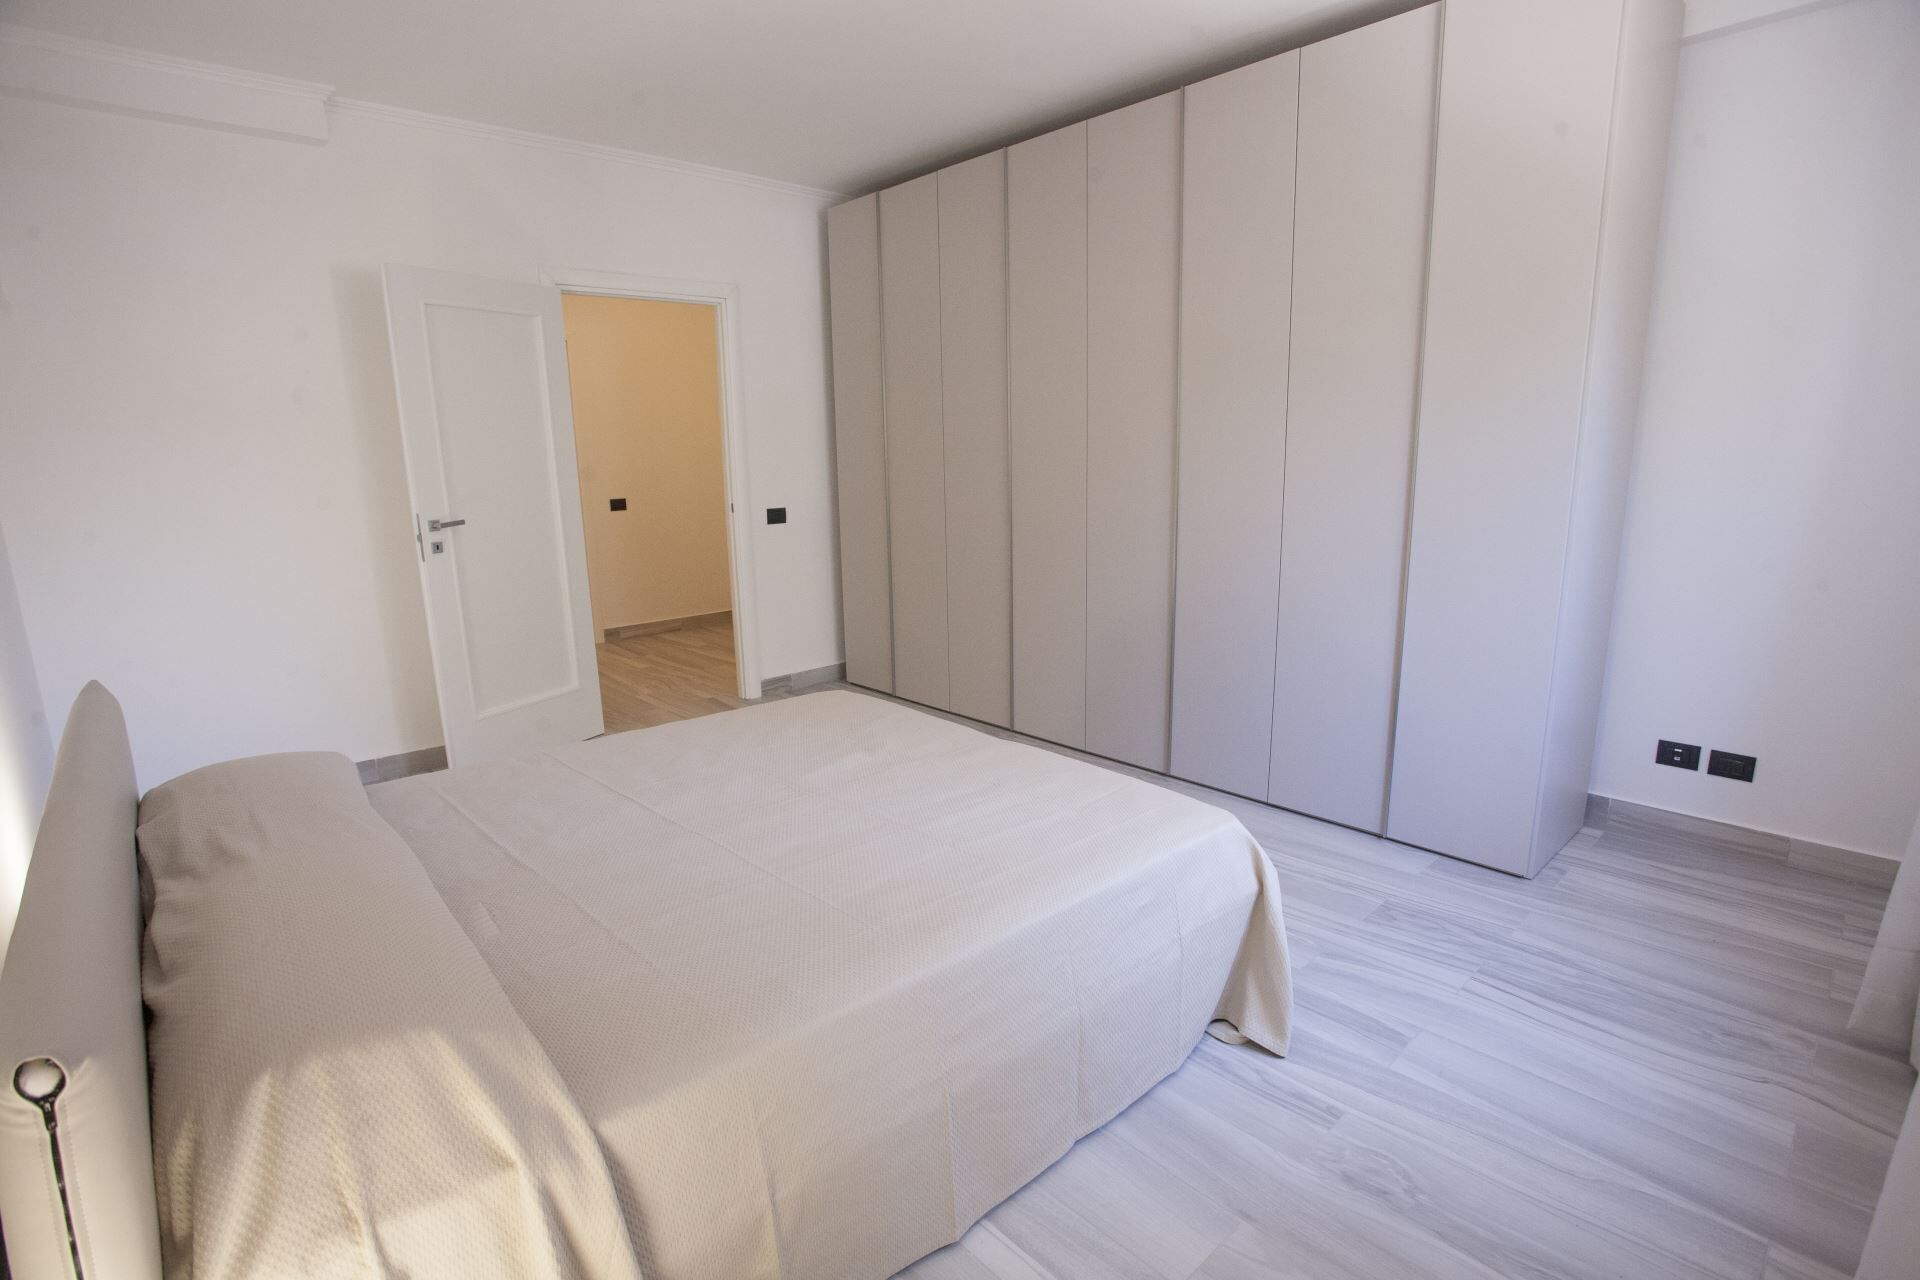 Lungomare Apartment in Portoferraio on the City Side, Neat to the City Center, the Beaches and the p